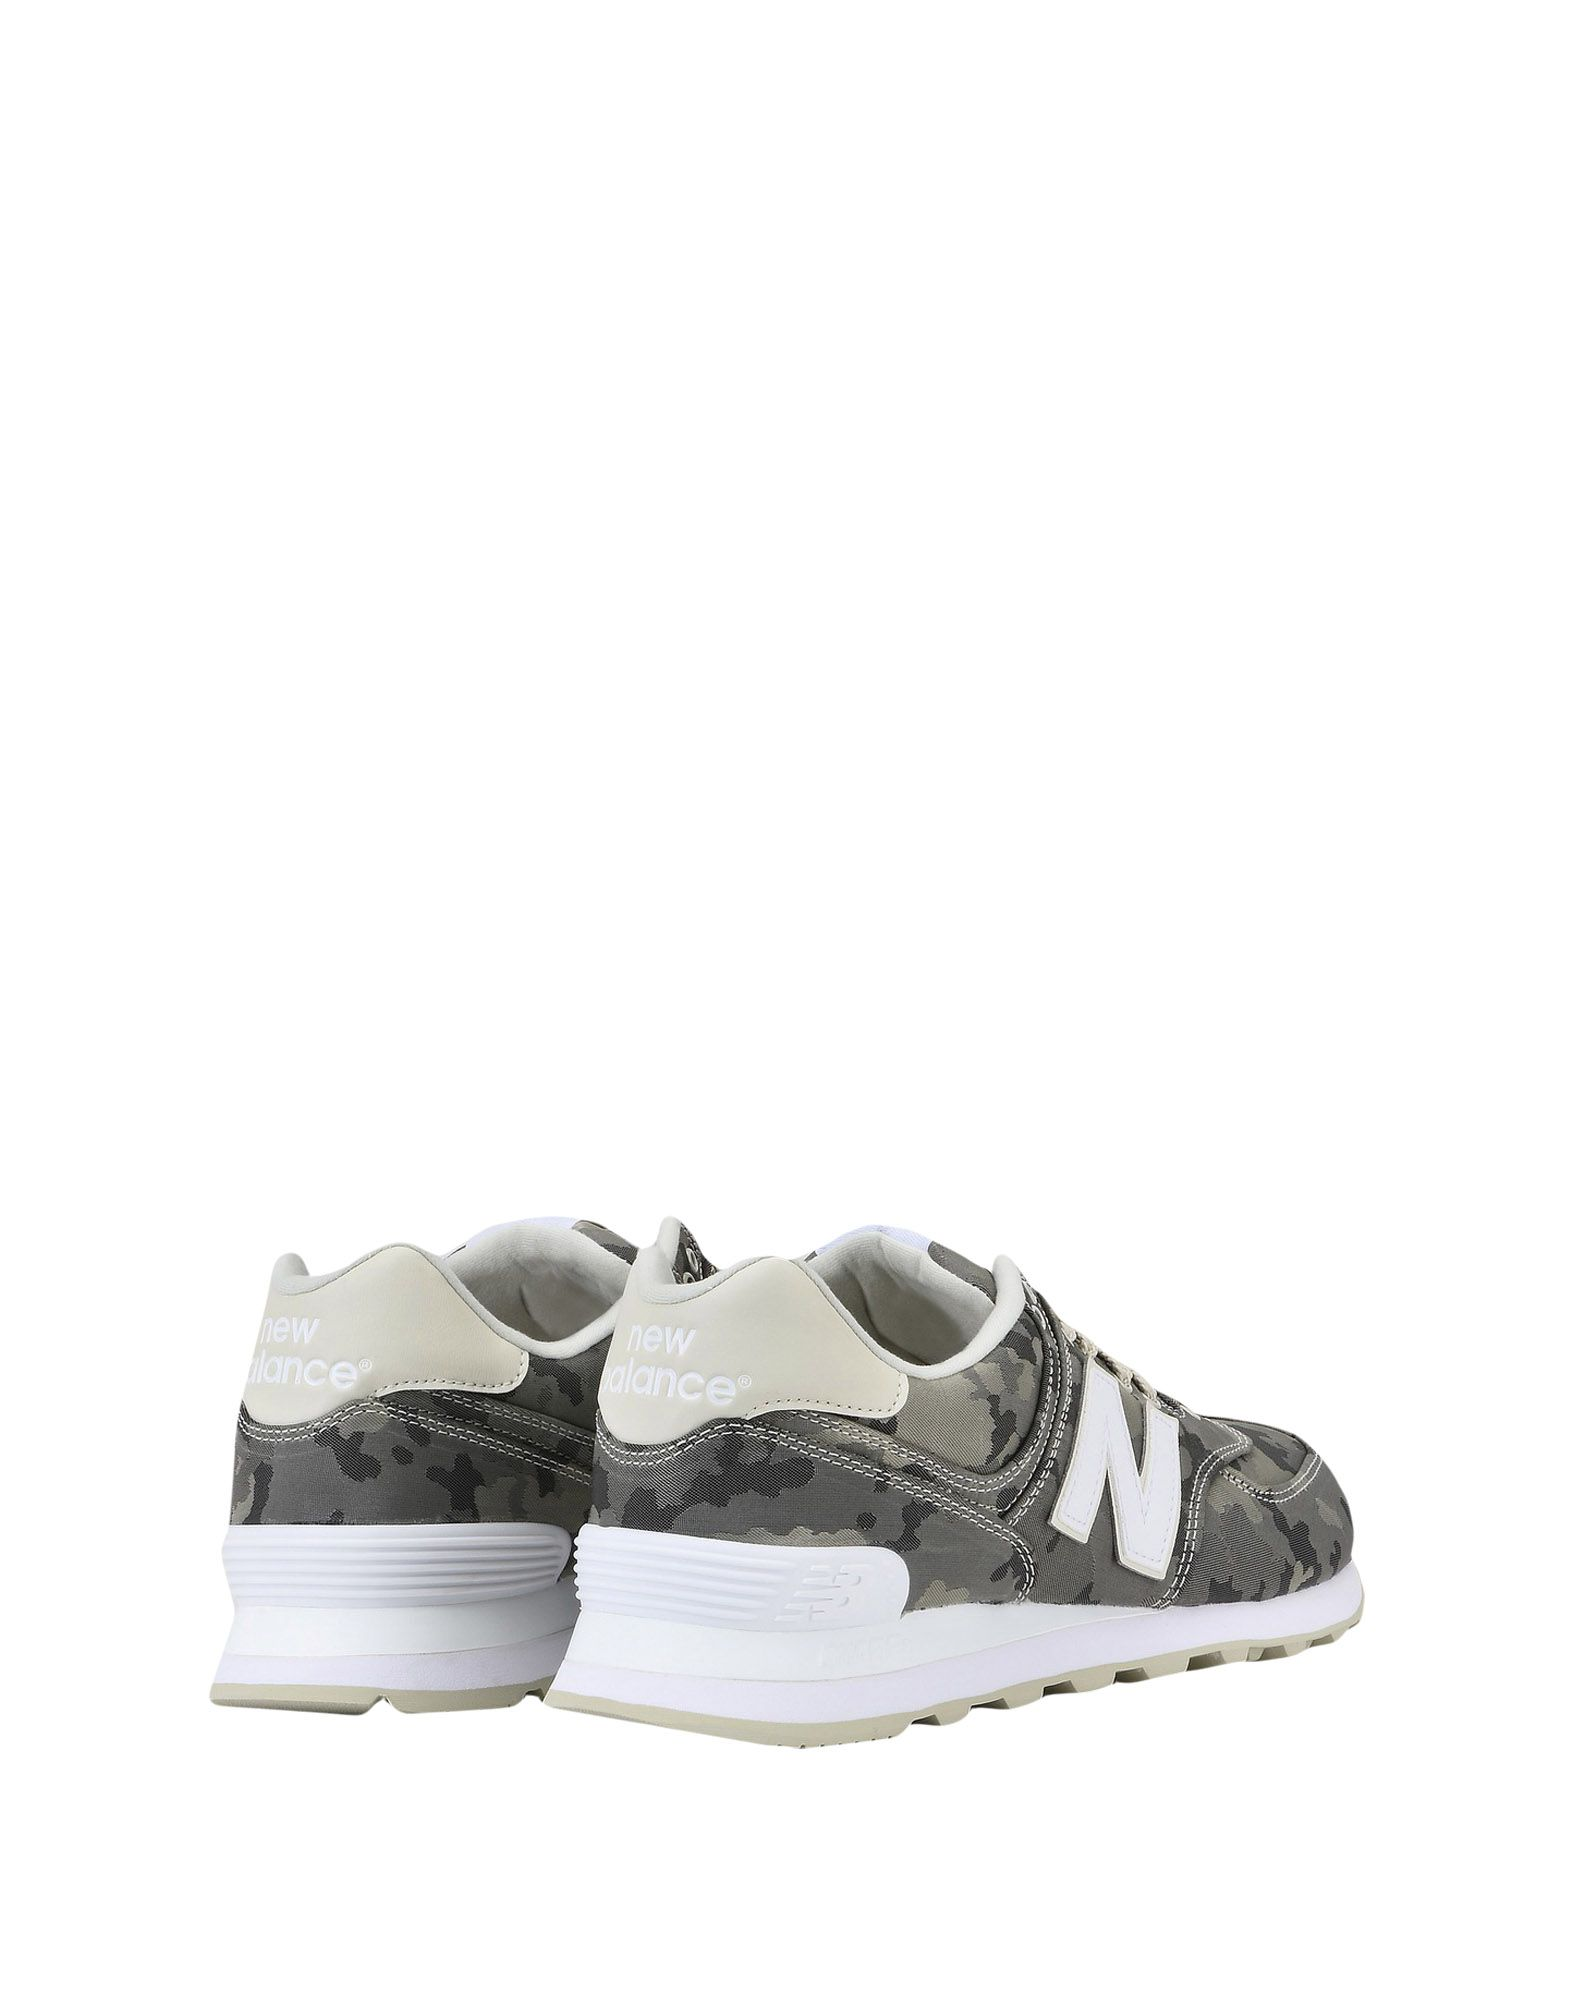 Sneakers New Balance 574 Camouflage - Femme - Sneakers New Balance sur